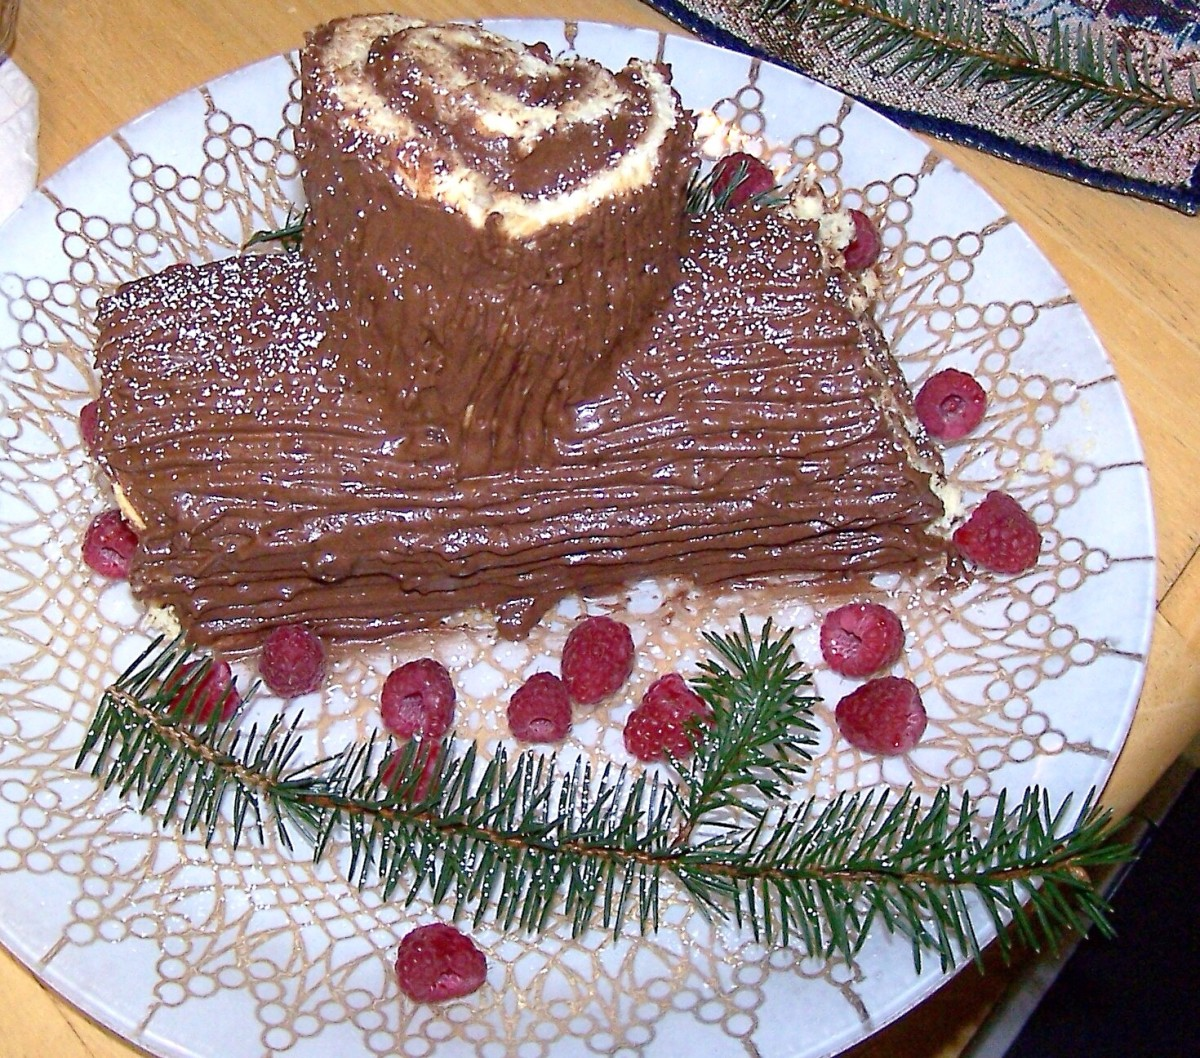 A Yule log cake or buche de Noel